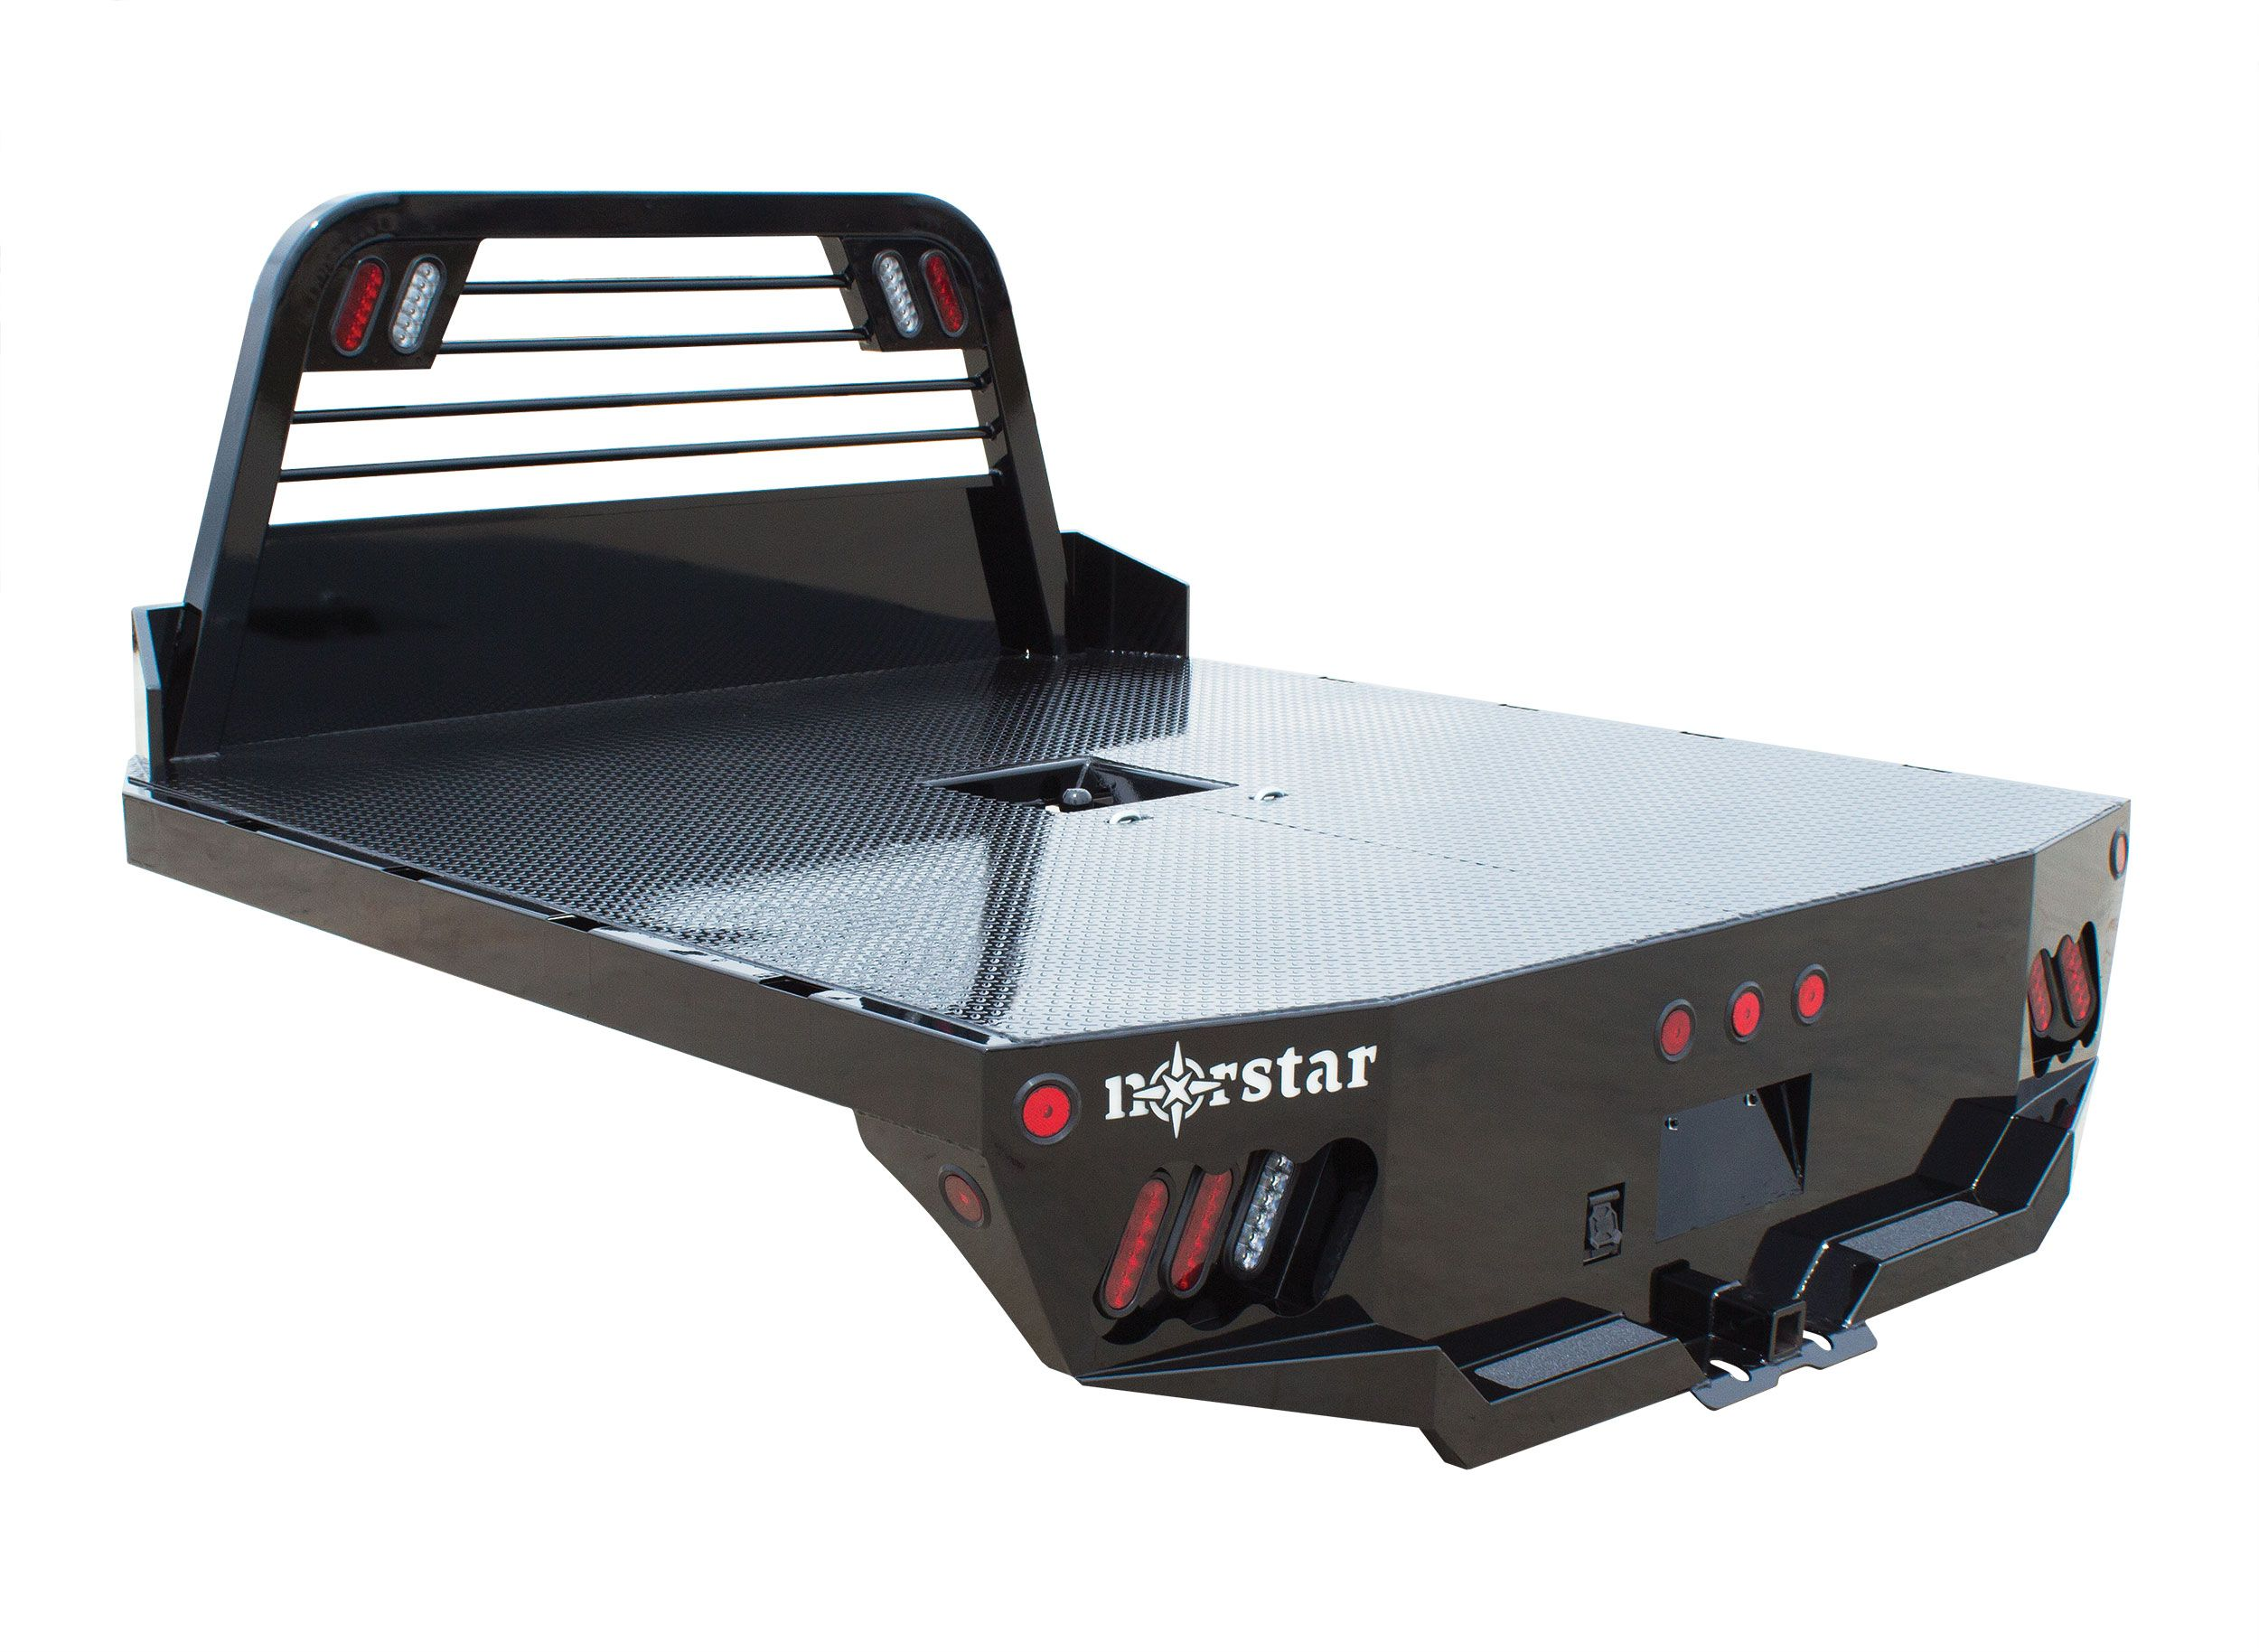 Norstar SF Flat Bed Flat bed, Truck bed, Bed